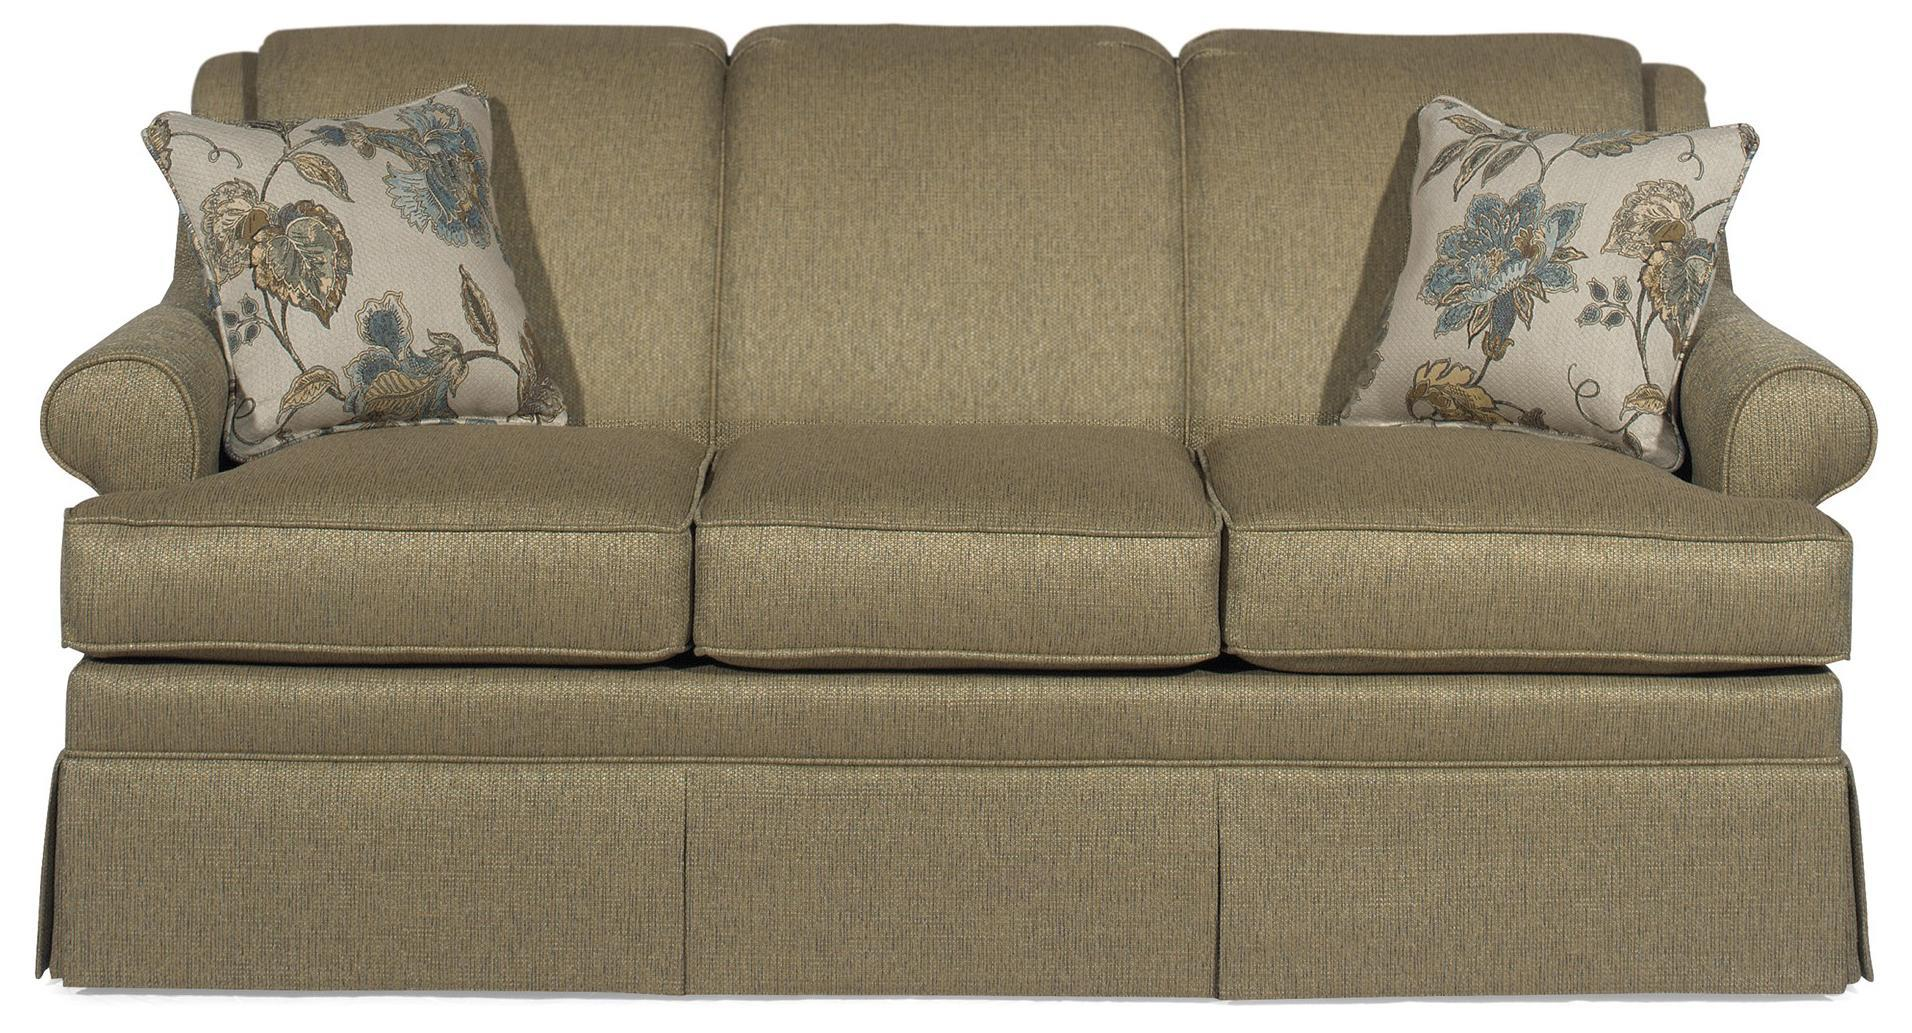 traditional sleeper sofa sectional traditional sleeper sofa with rolled arms and skirt by craftmaster